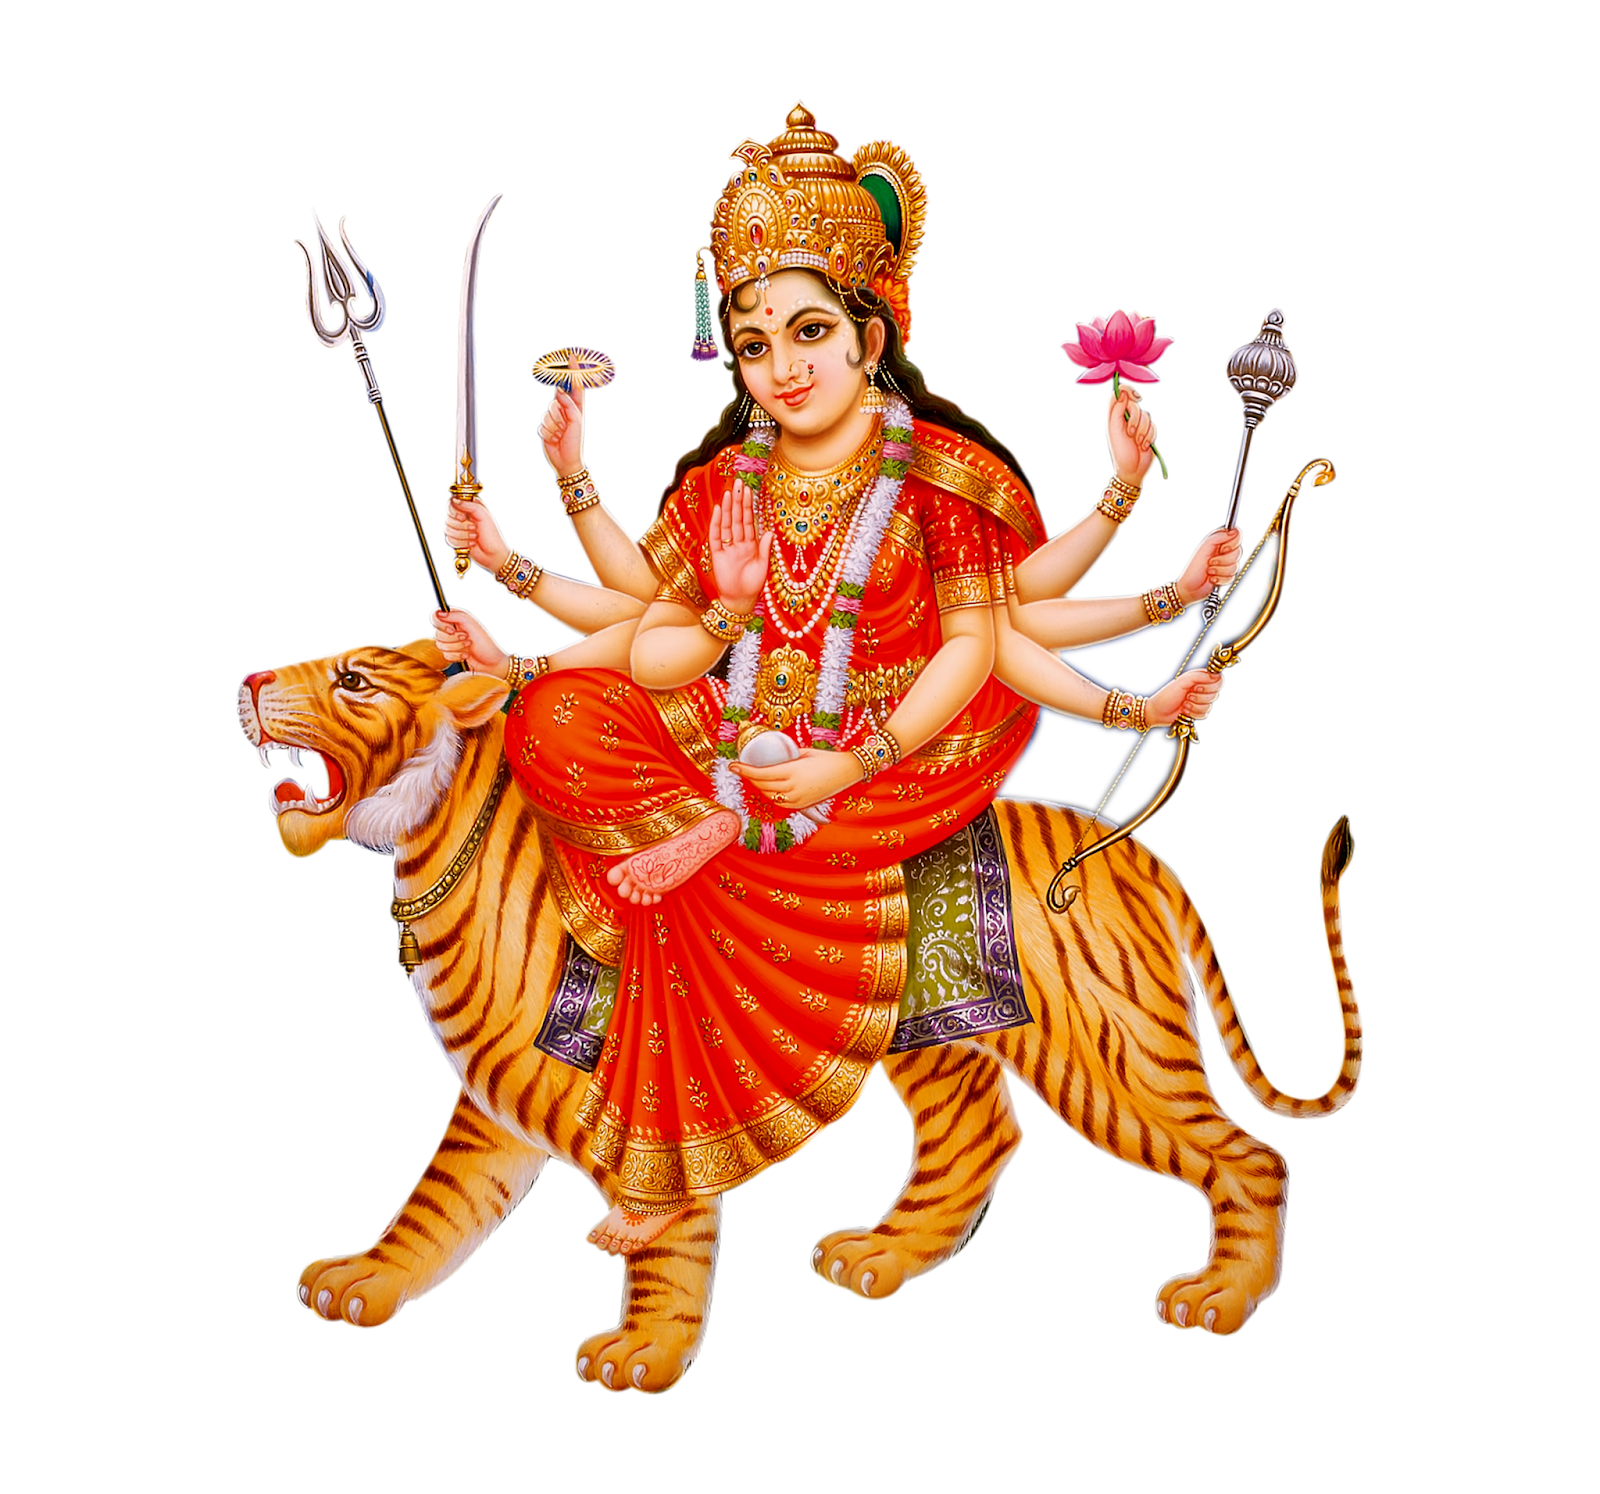 Durga Maa Png, png collections at sccpre.cat.